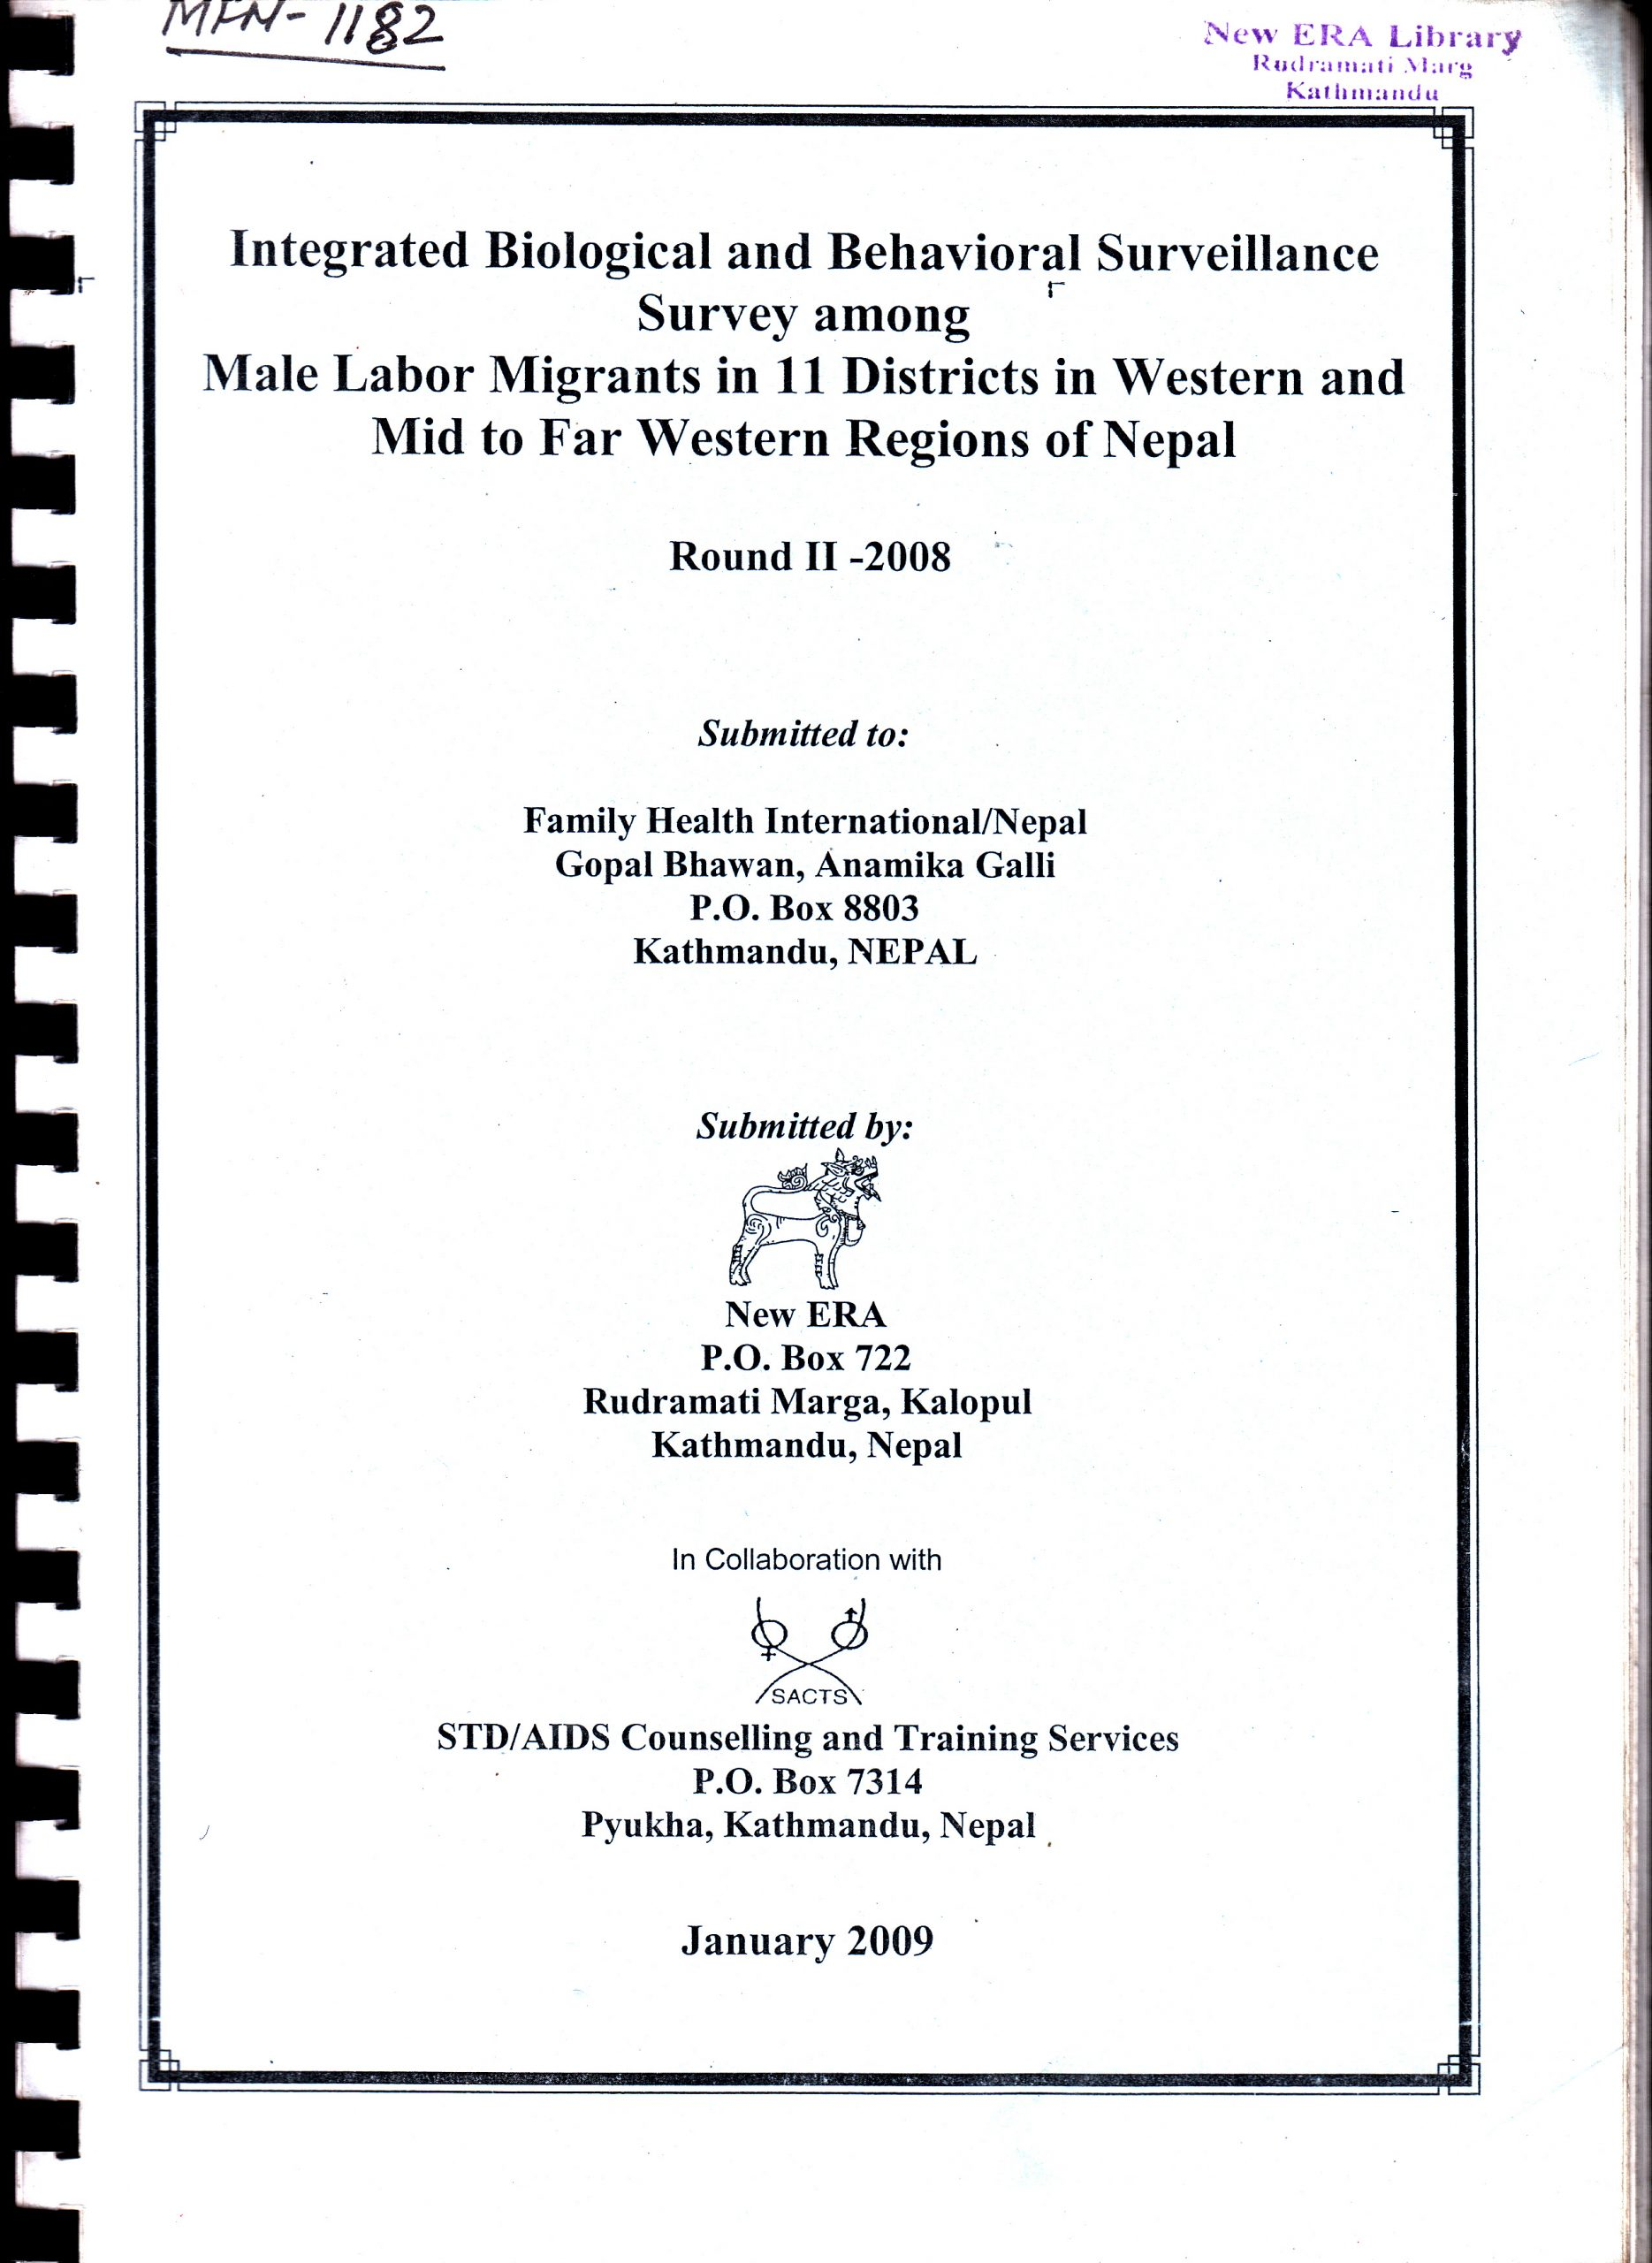 Integrated Biological Behavioral Surveillance Survey among Male Labor Migrants in 11 Districts in Western and Mid to Far Western Regions of Nepal, Round II – 2008